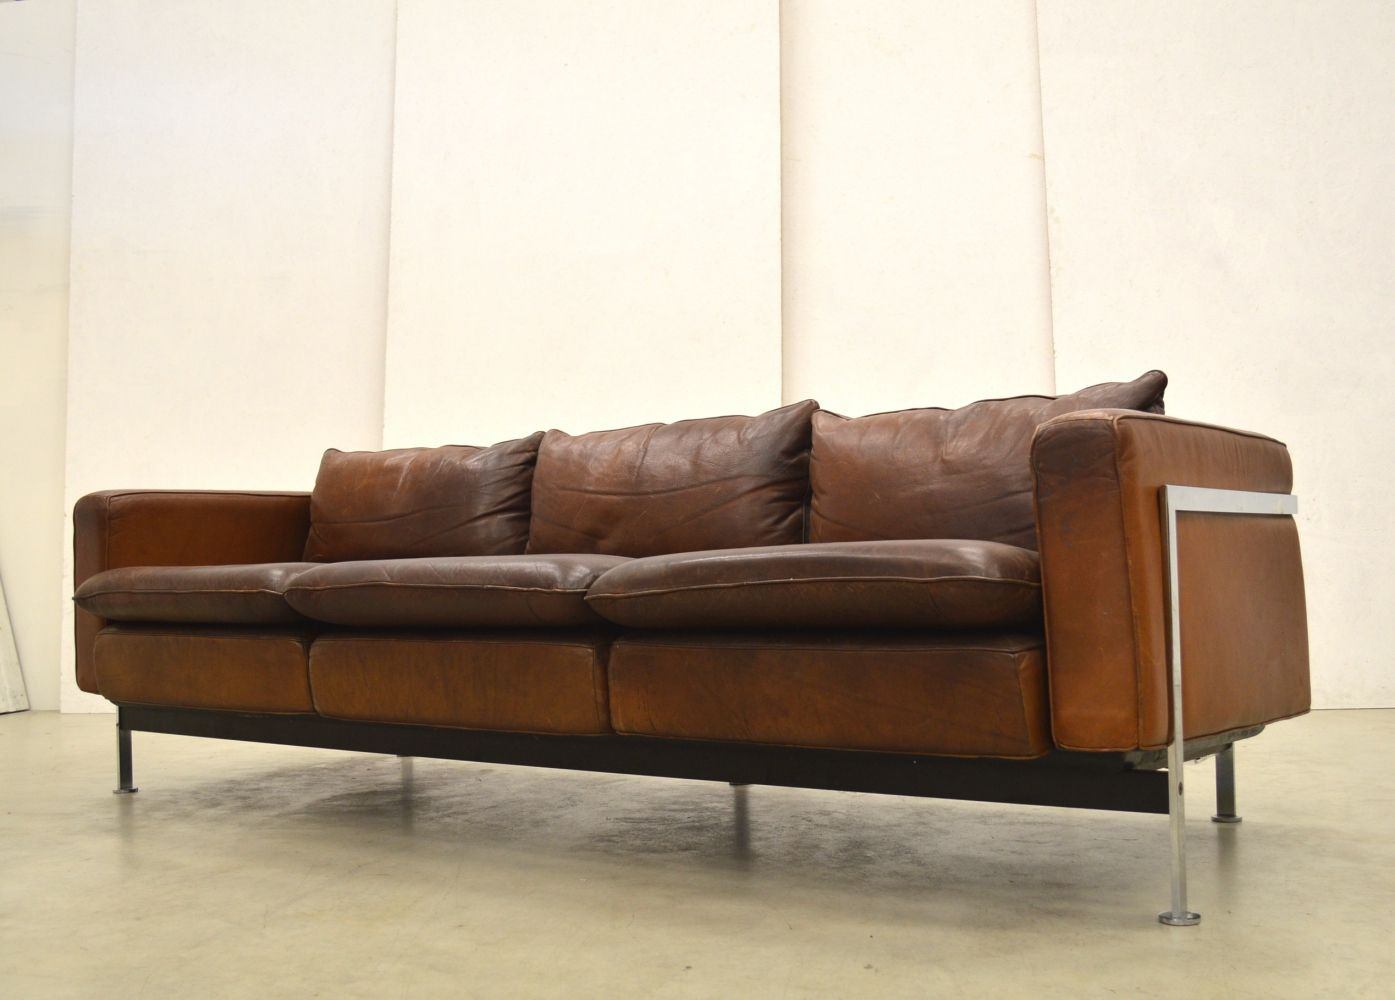 For Sale Rare Early Rh302 3 Seater Sofa By Robert Haussmann For Hans Kaufeld 3 Seater Sofa Sofa Seater Sofa